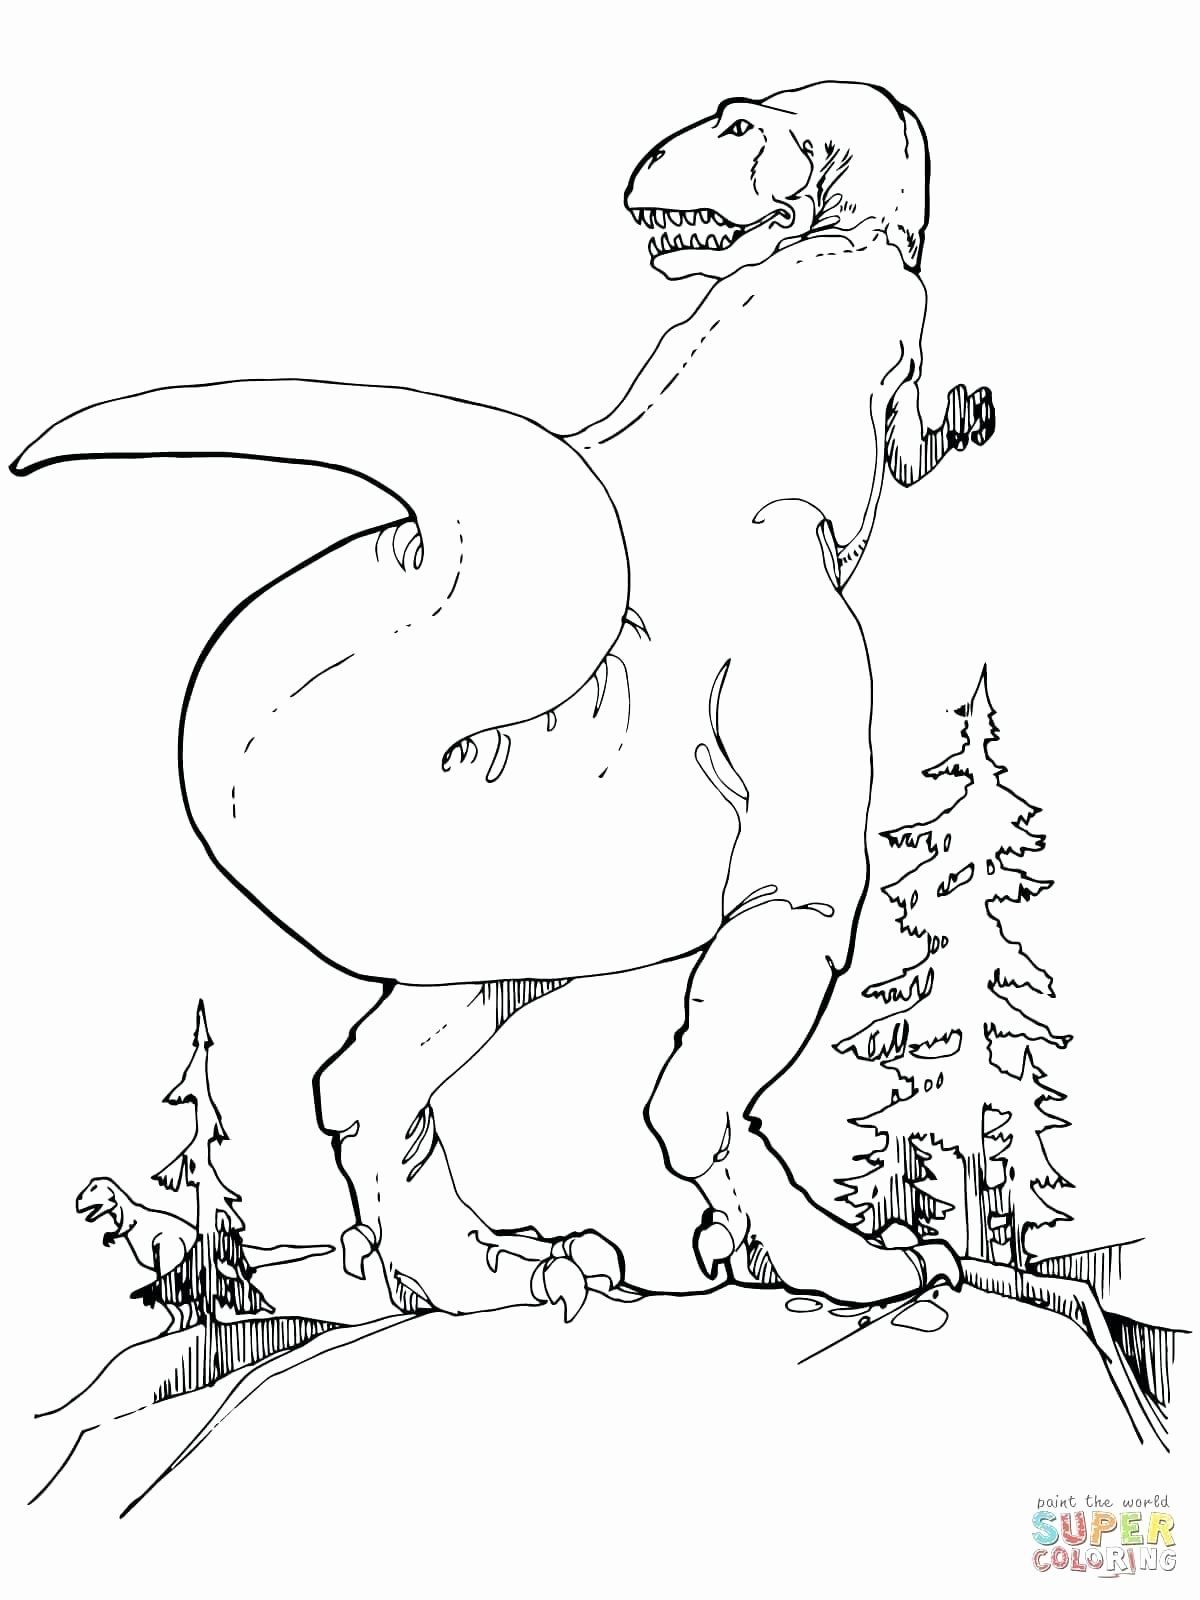 T Rex Coloring Pages Printable Awesome Captain Rex Coloring Pages Champprint Dinosaur Coloring Pages Dinosaur Coloring Free Printable Coloring Pages